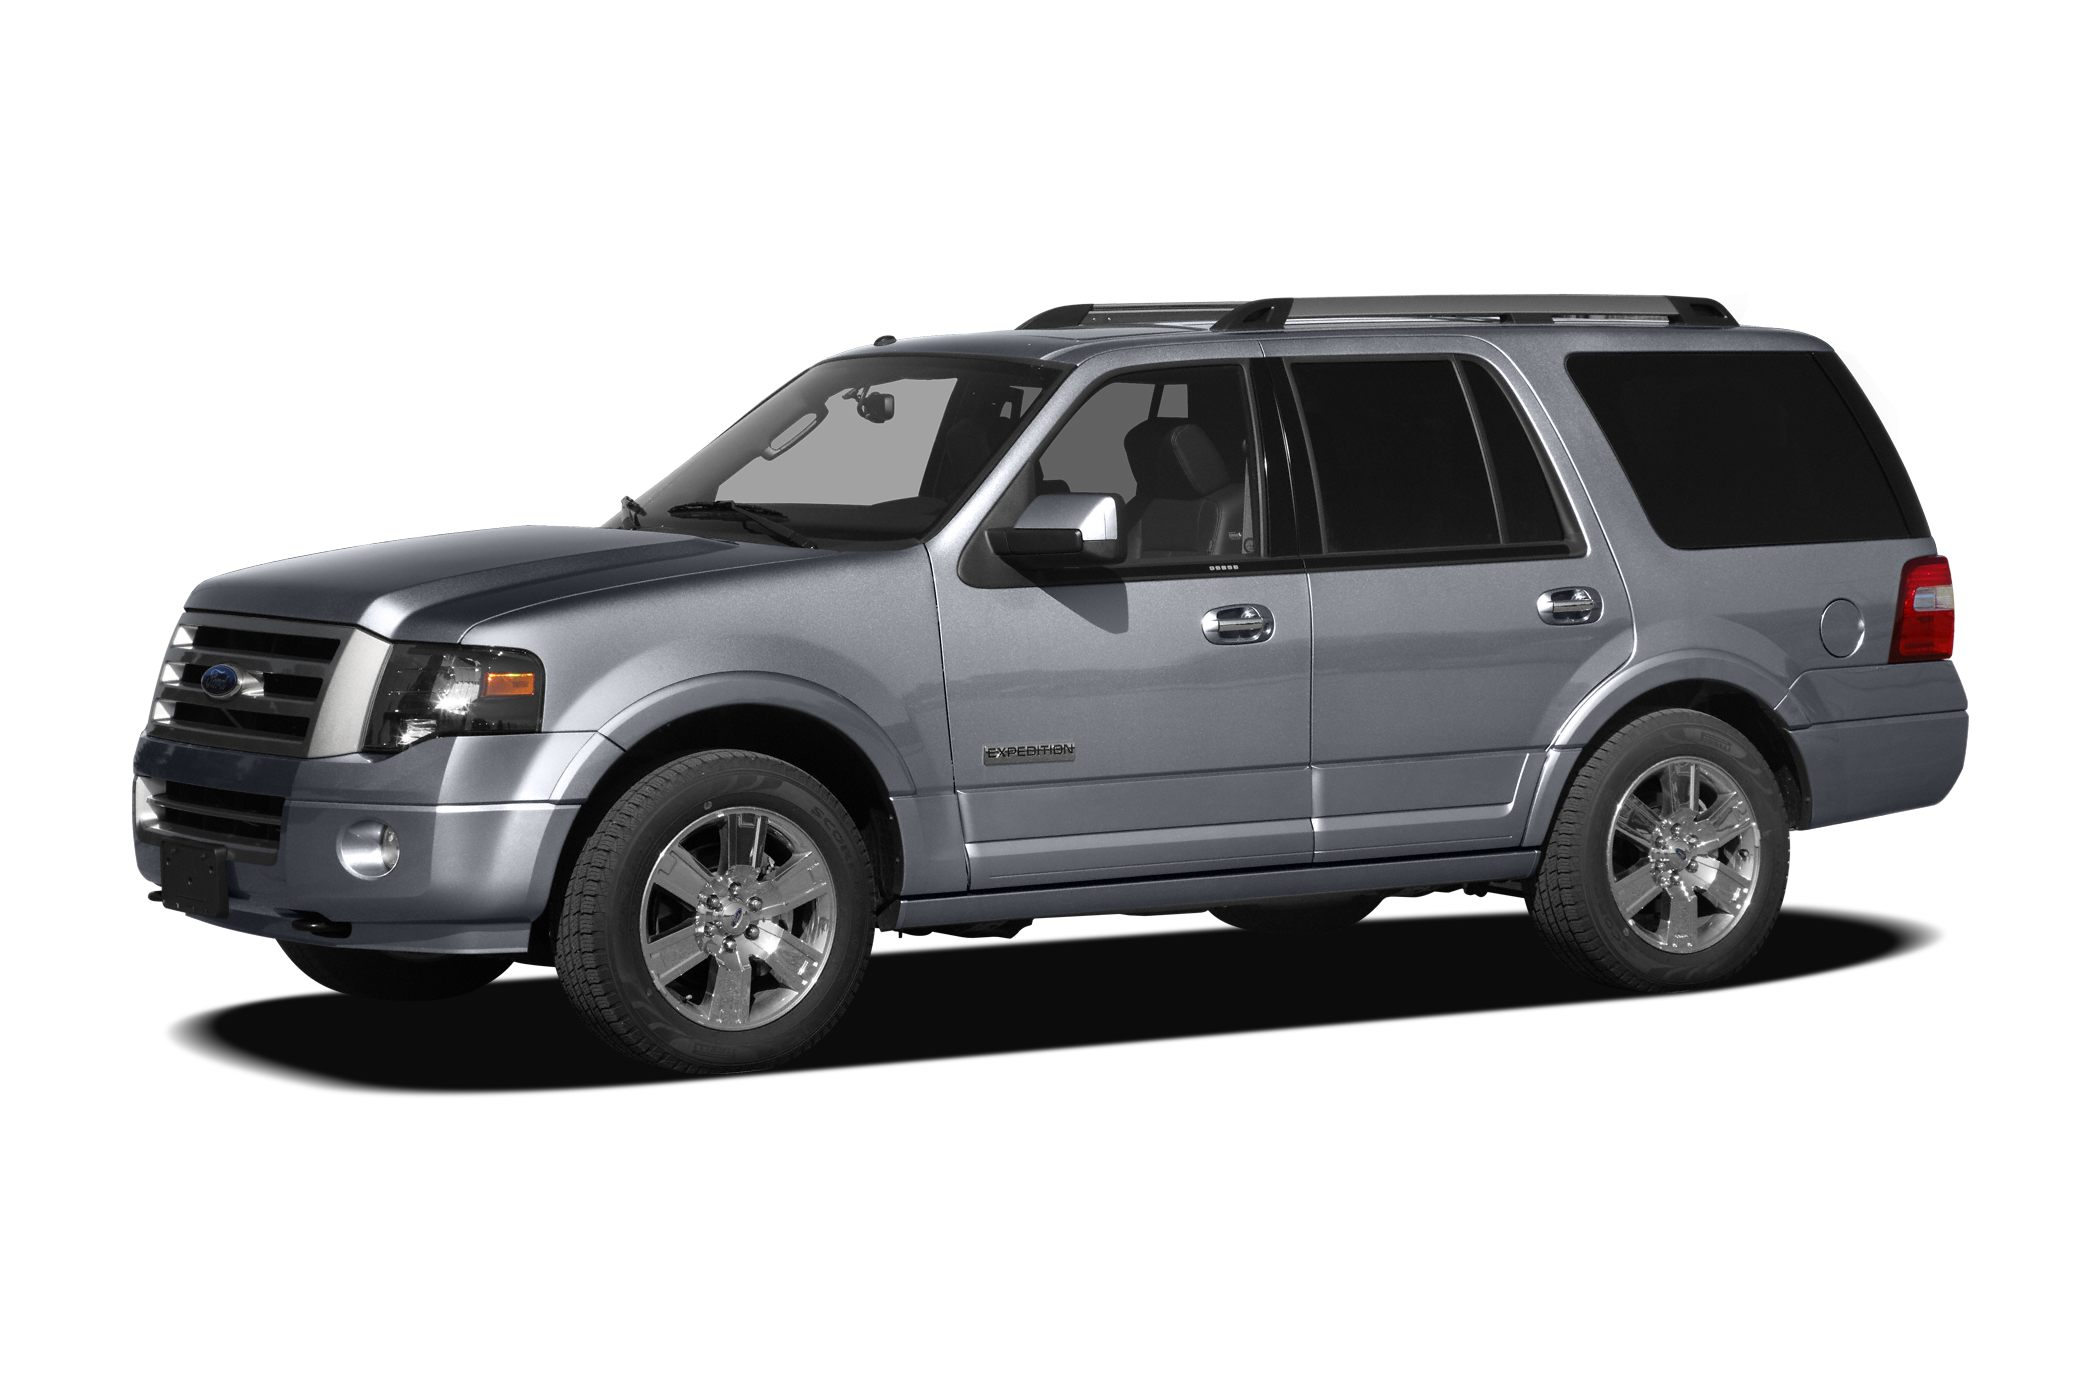 2010 Ford Expedition Recalls